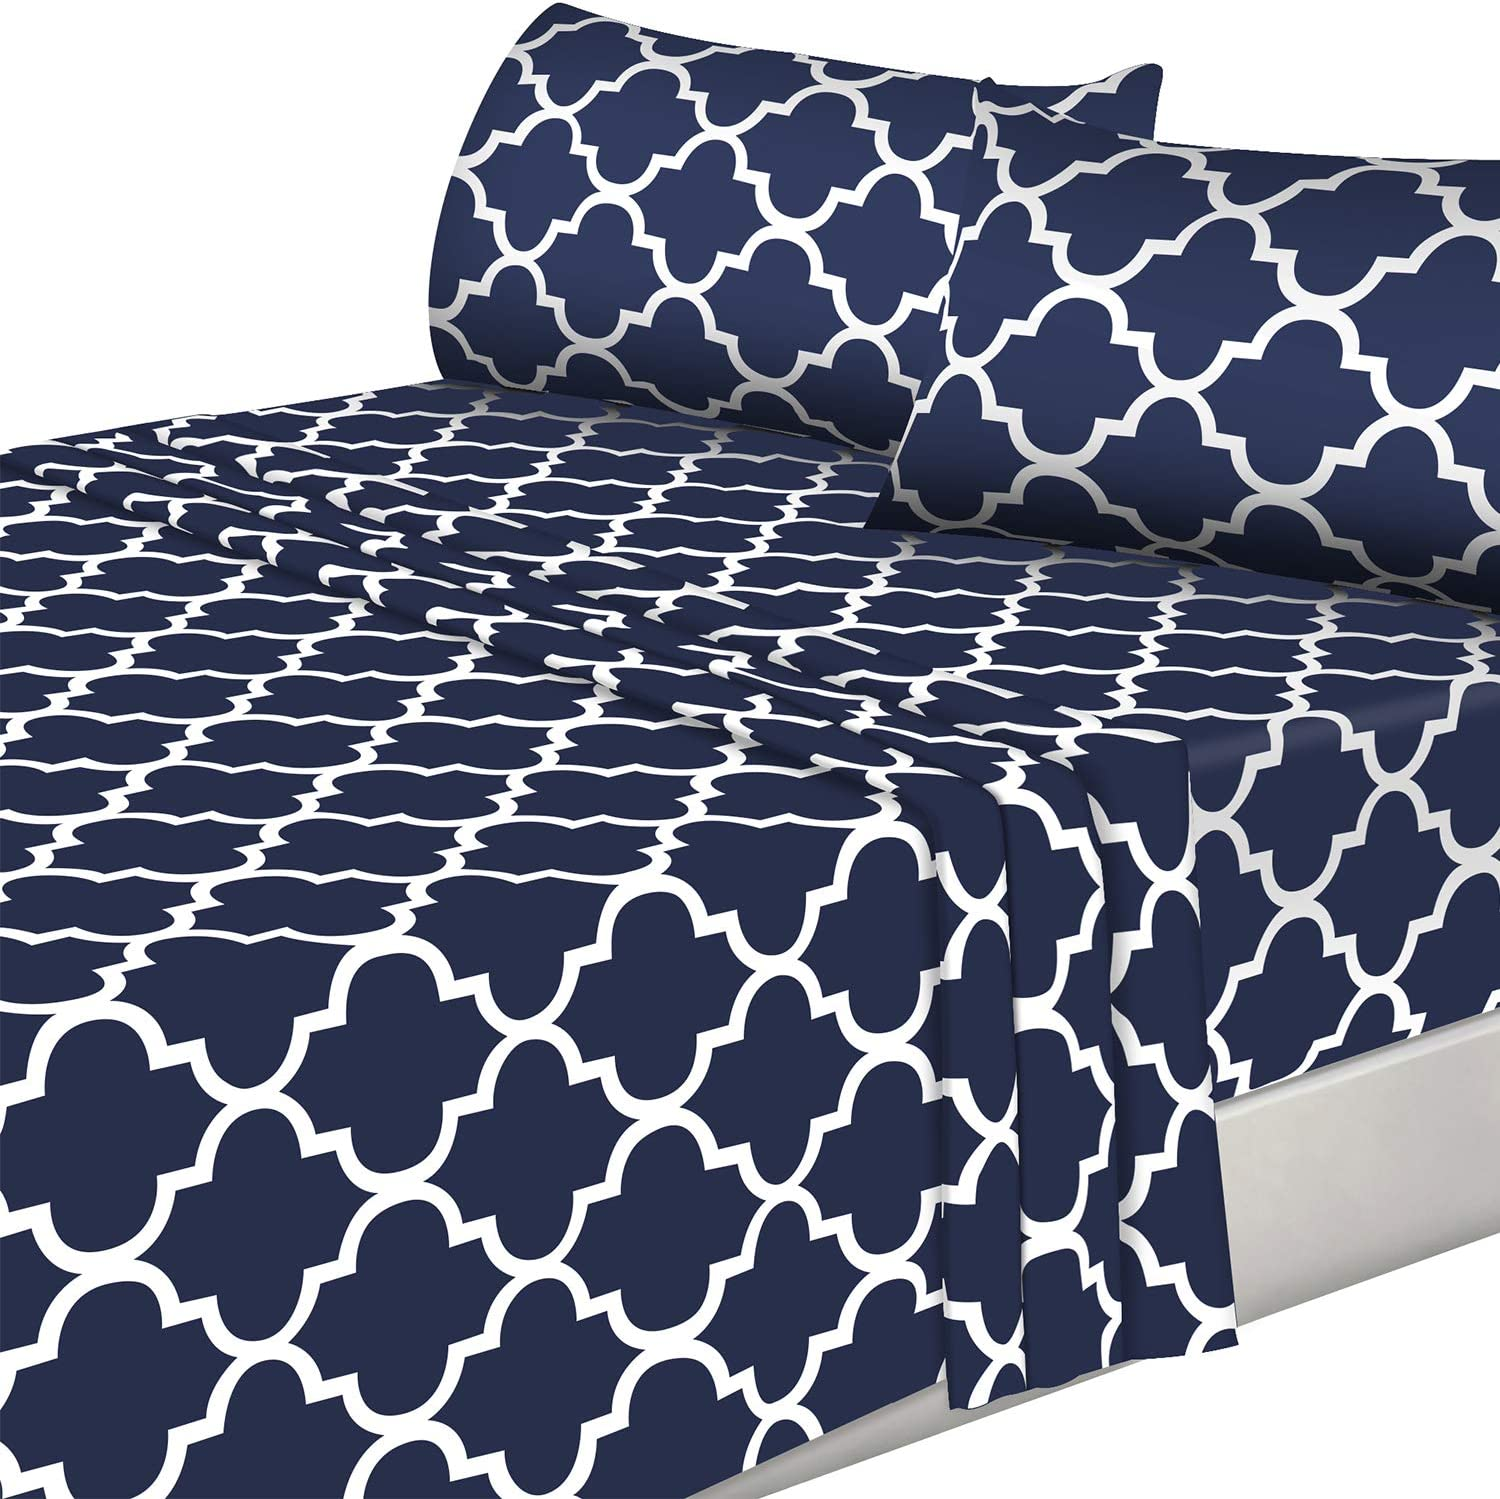 Utopia Bedding 4PC Bed Sheet Set 1 Flat Sheet, 1 Fitted Sheet, and 2 Pillowcases (Full, Navy)